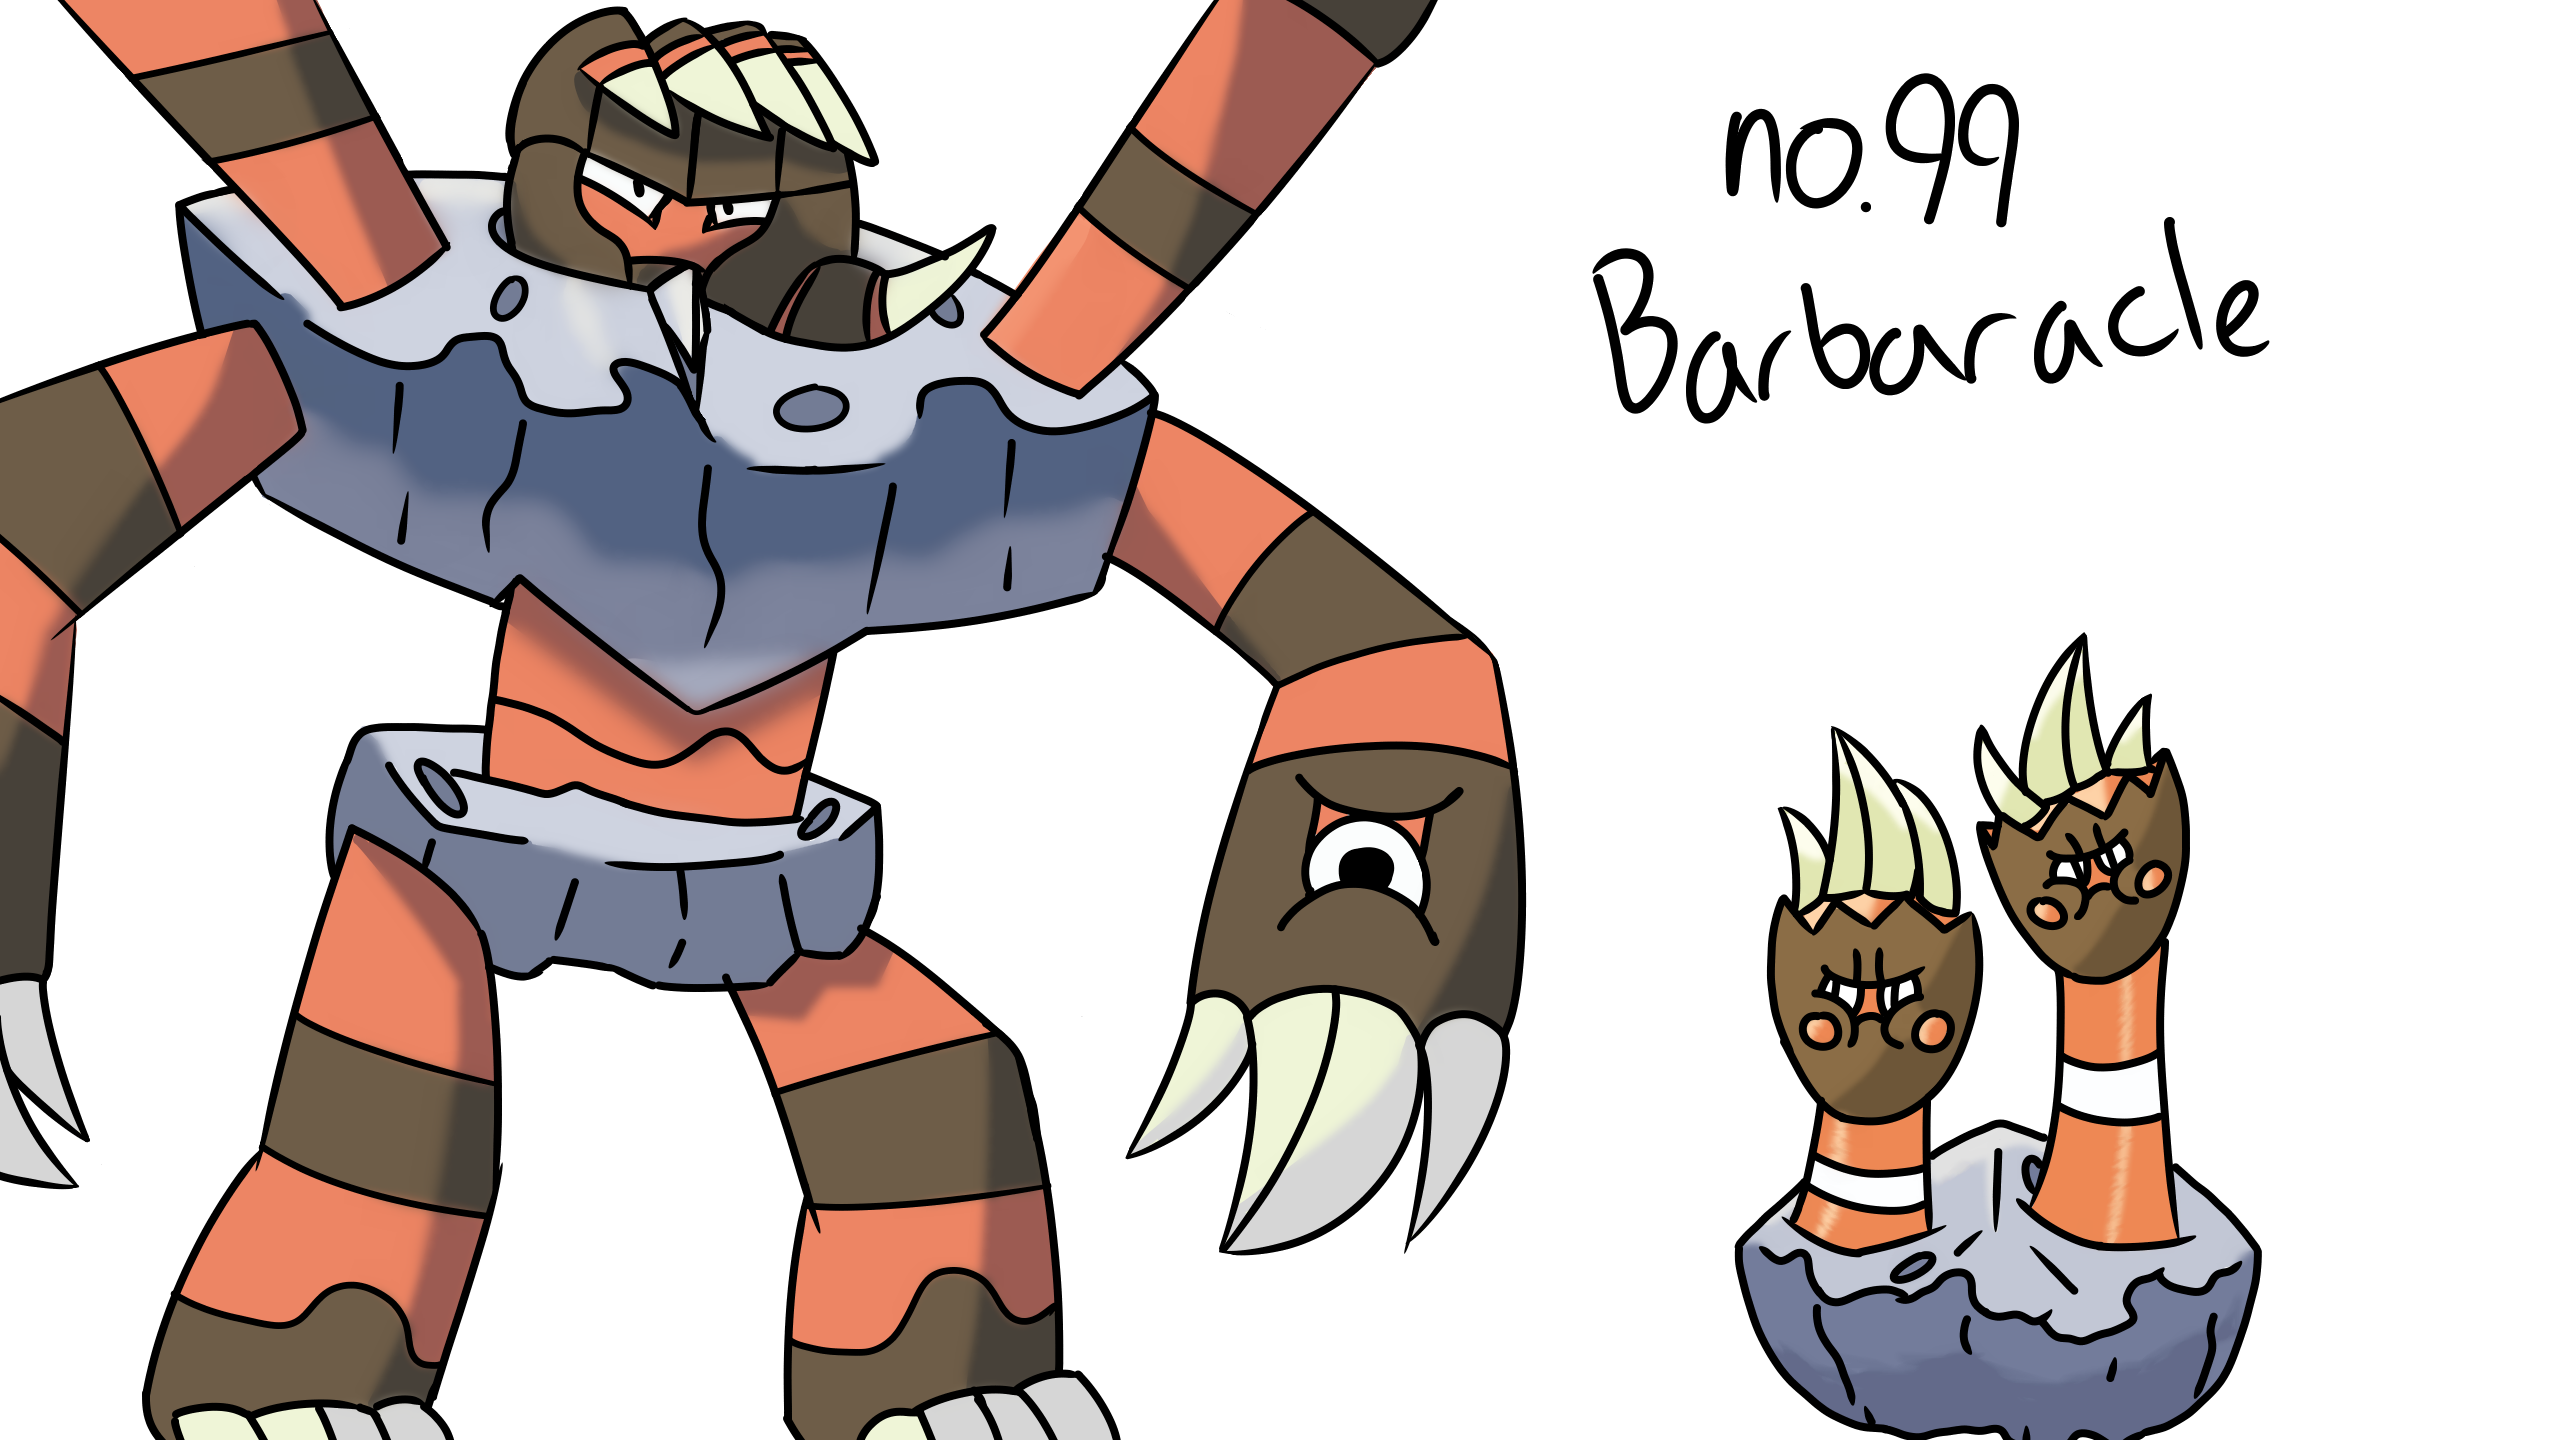 no99 Barbaracle line by ANIMATEDidiot 2560x1440